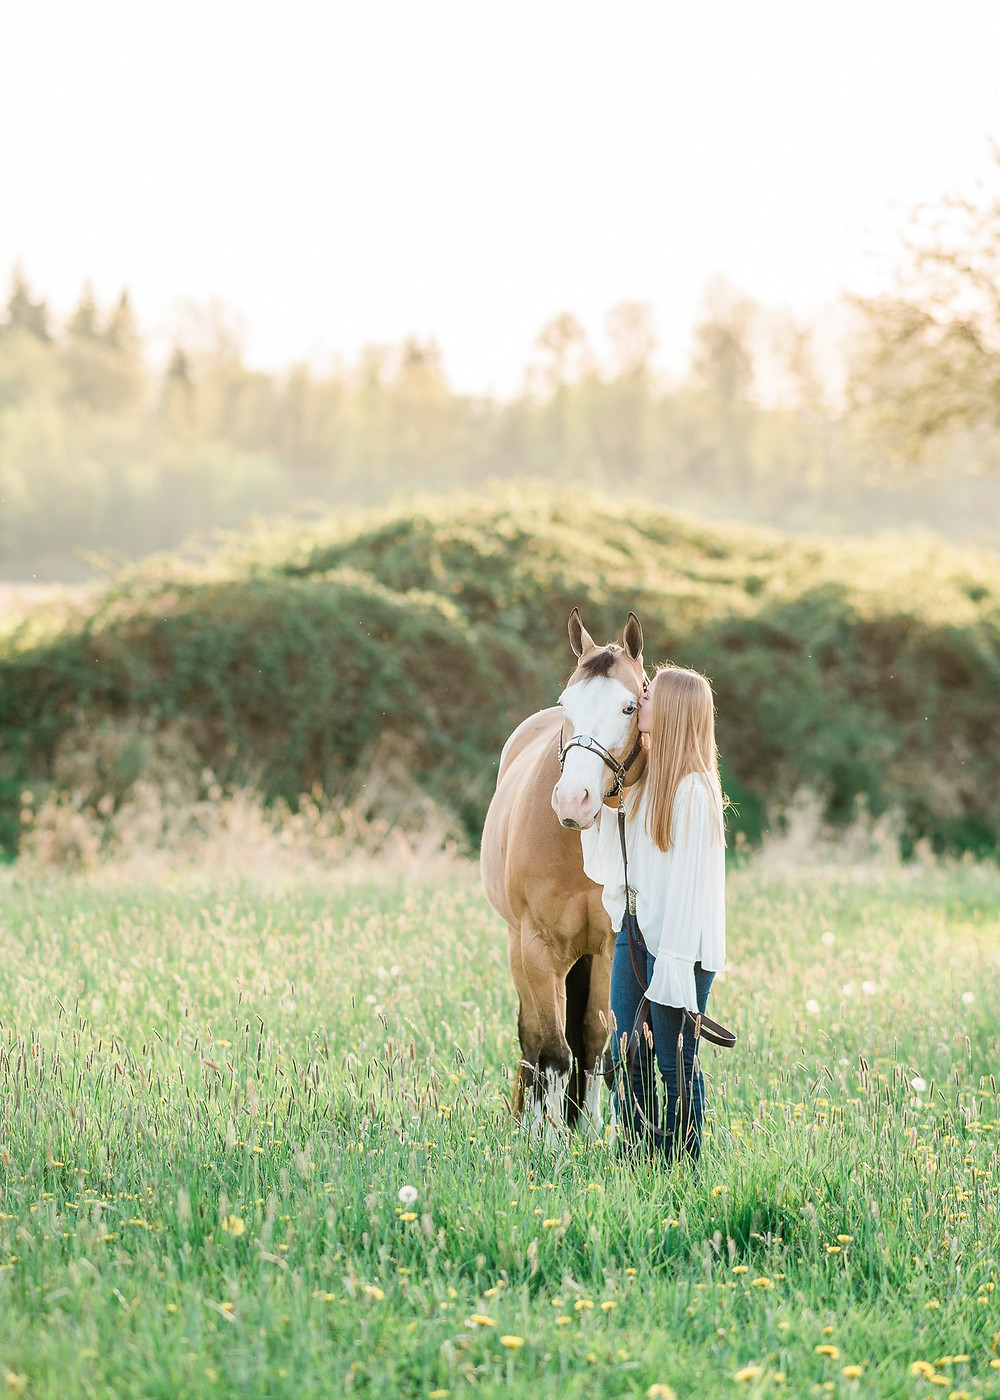 Ansley kissing Shiloh, her APHA gelding on the cheek